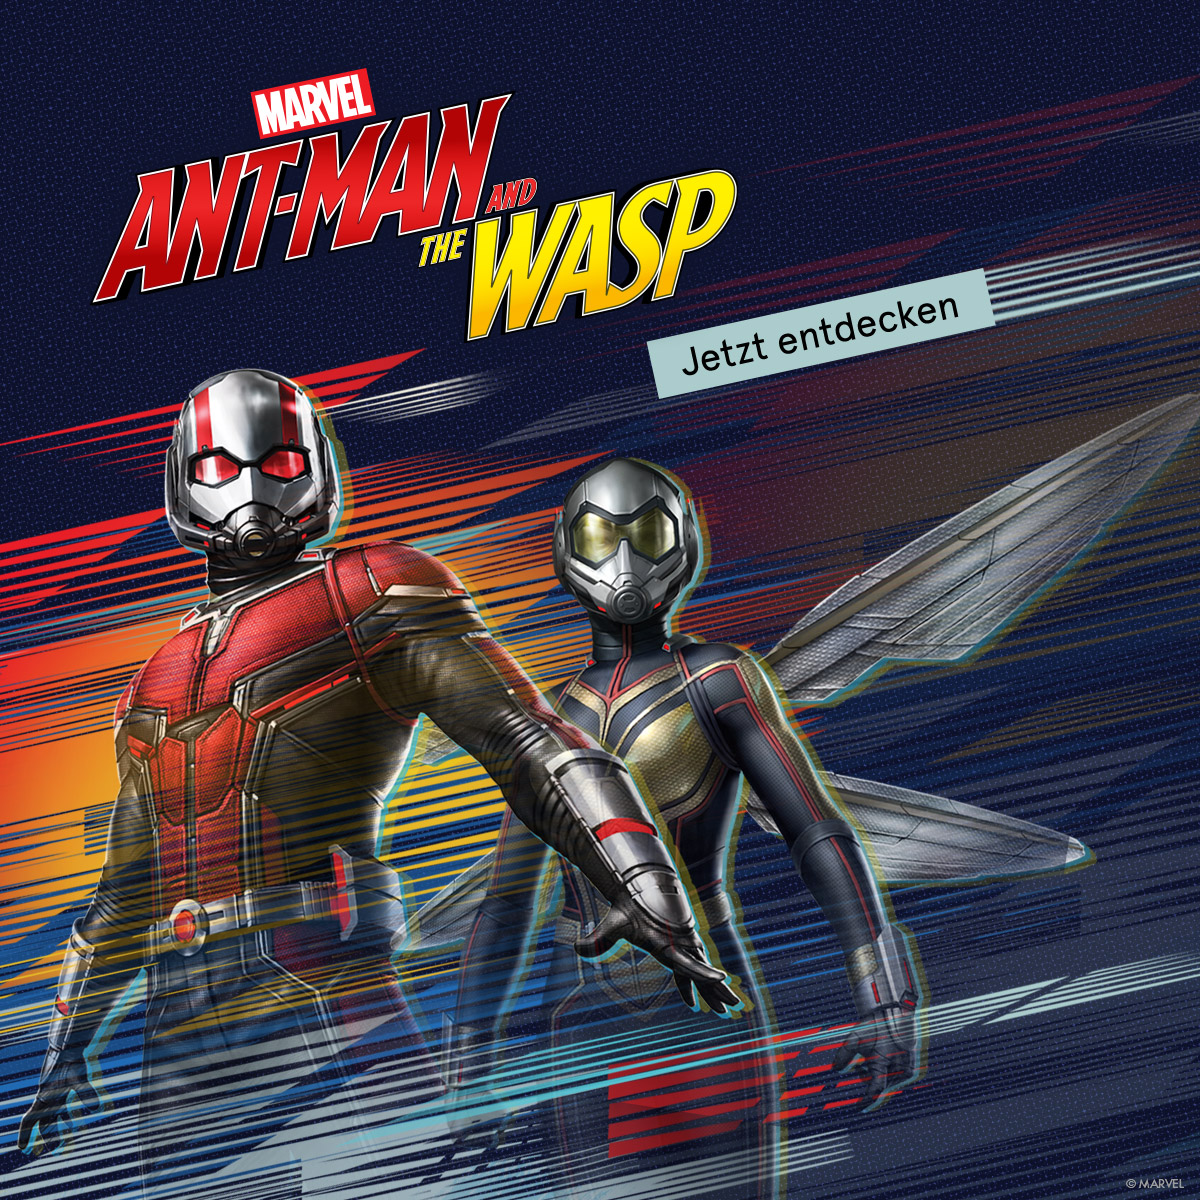 Marvel. Ant-Man and the Wasp. Jetzt entdecken.